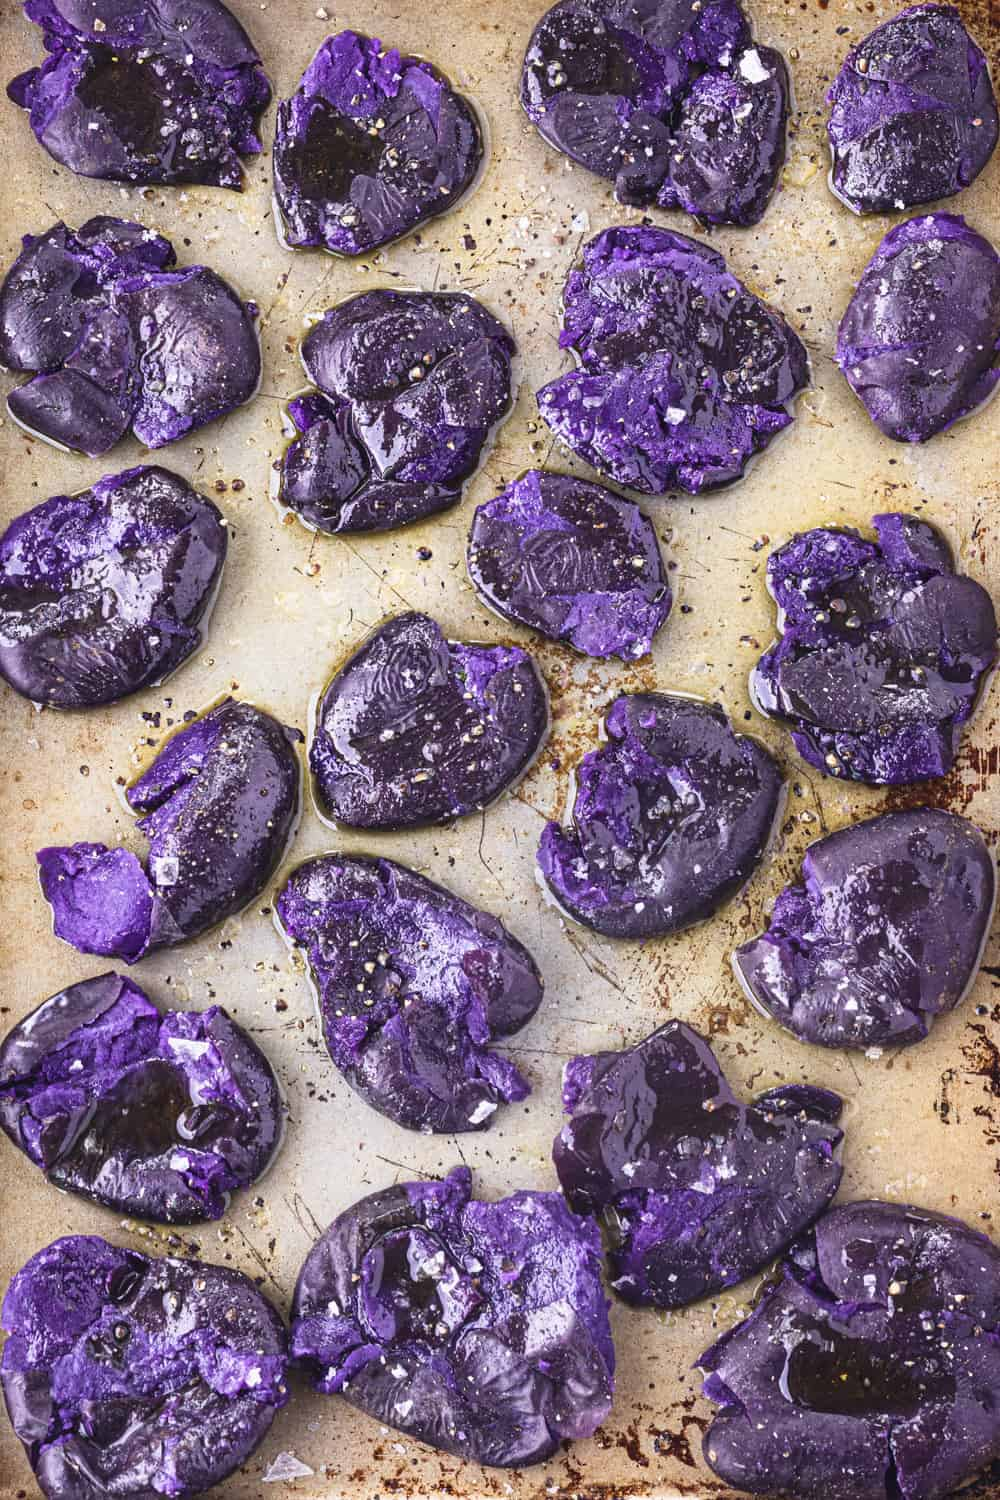 Par-boiled purple potatoes smashed on a gold(ish) baking sheet; sprinkled with flaky salt and overhead shot.